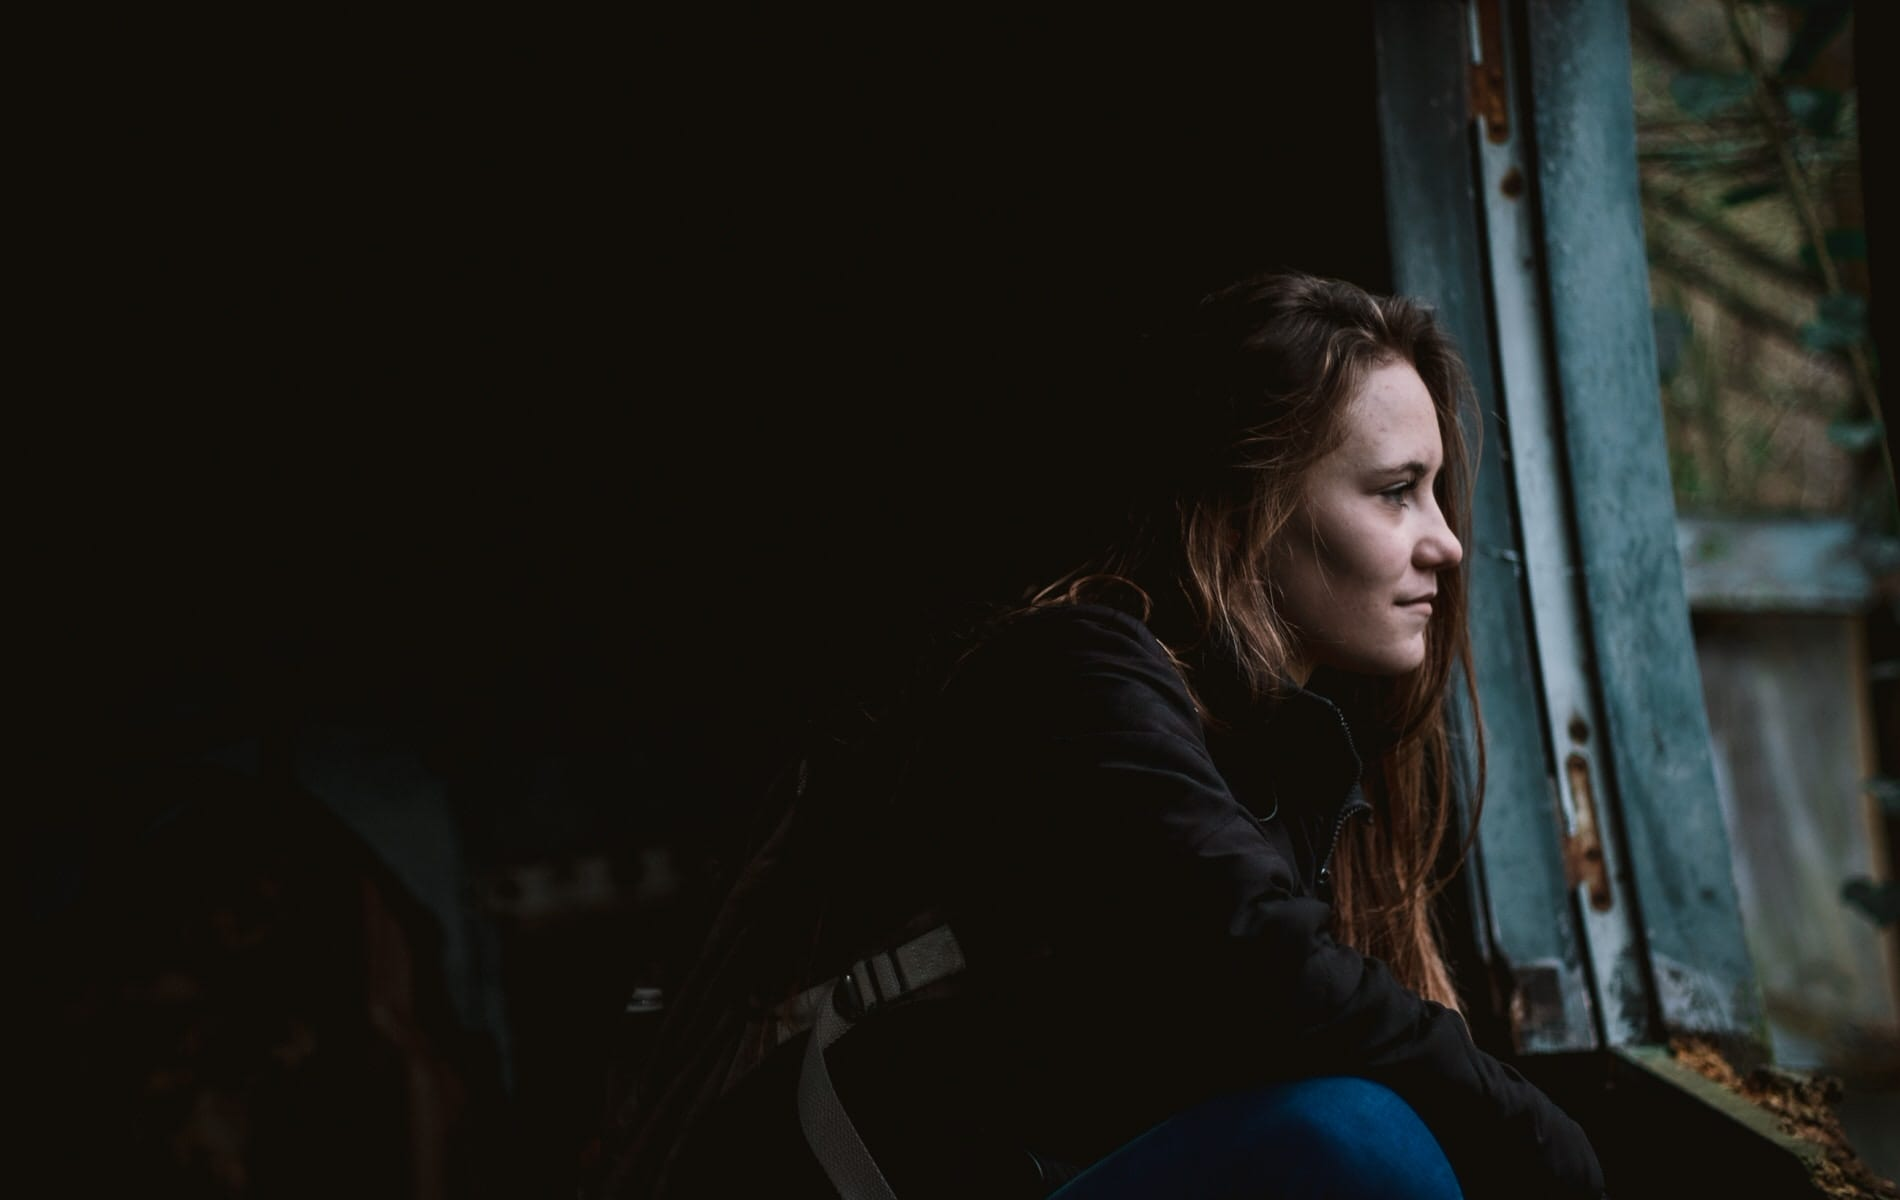 sad young woman looking out a window